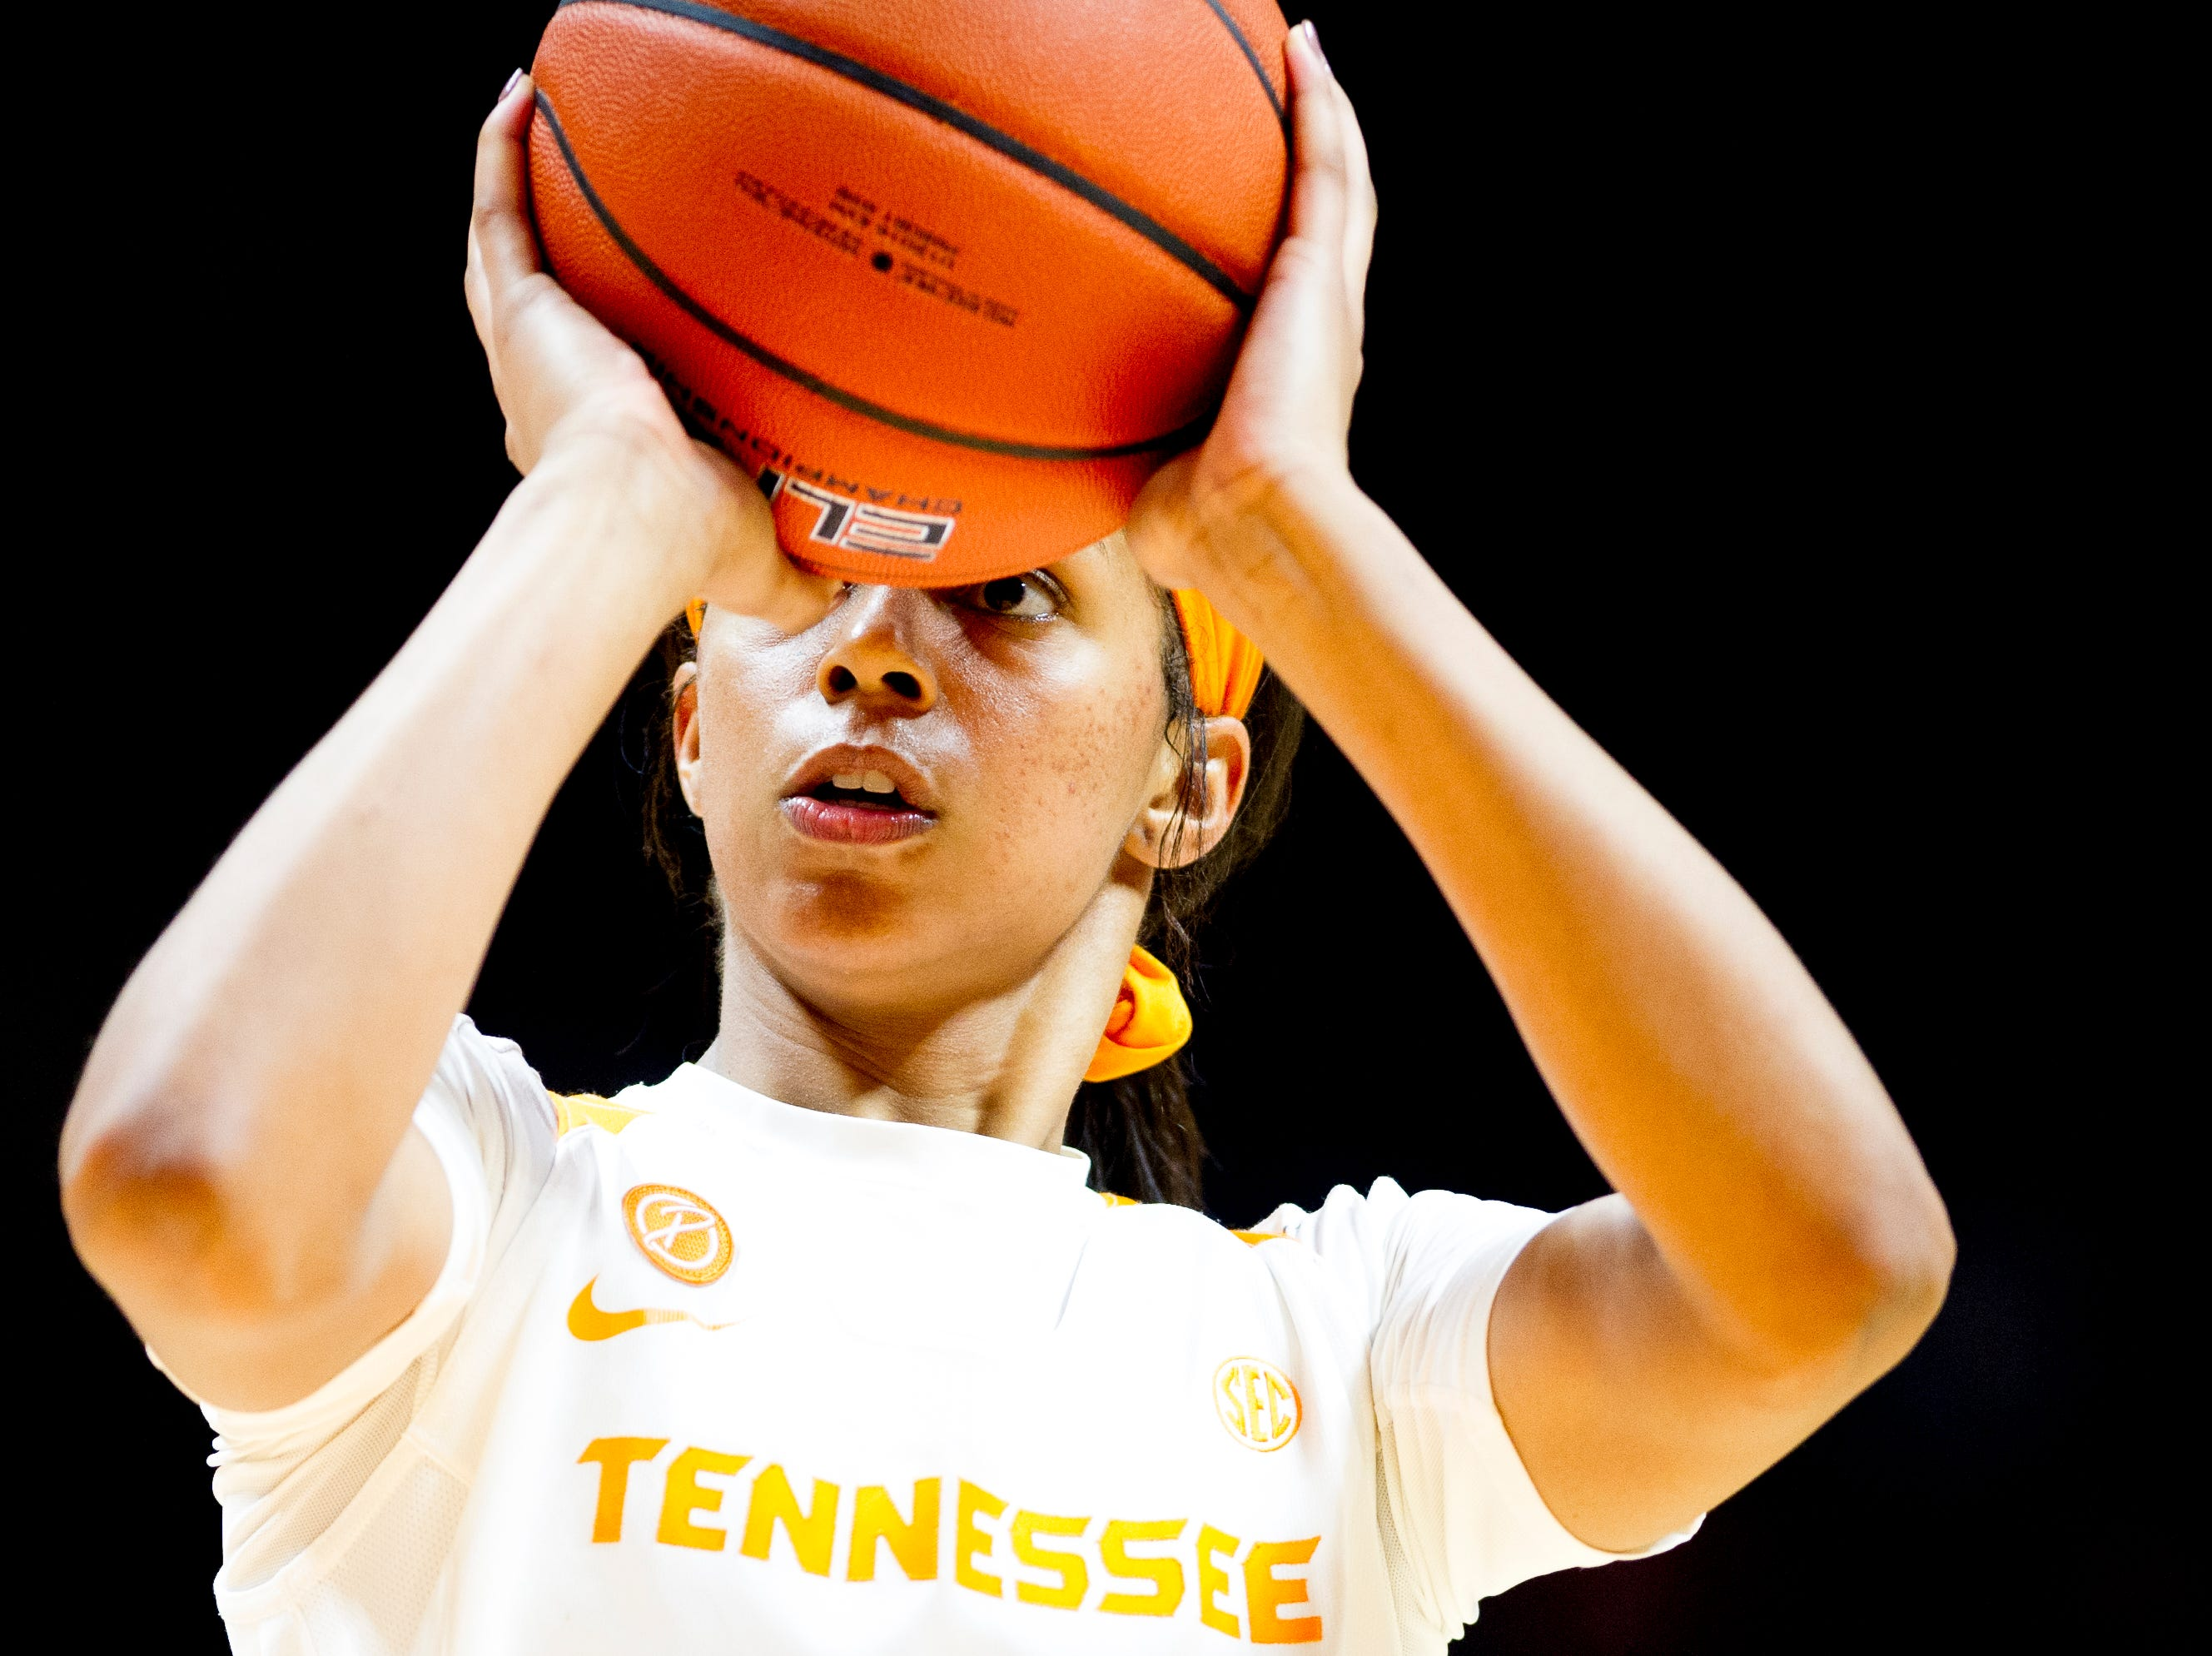 Tennessee guard Evina Westbrook (2) shoots a free throw during a game between the Tennessee Lady Vols and Murray State at Thompson-Boling Arena in Knoxville, Tennessee on Friday, December 28, 2018.